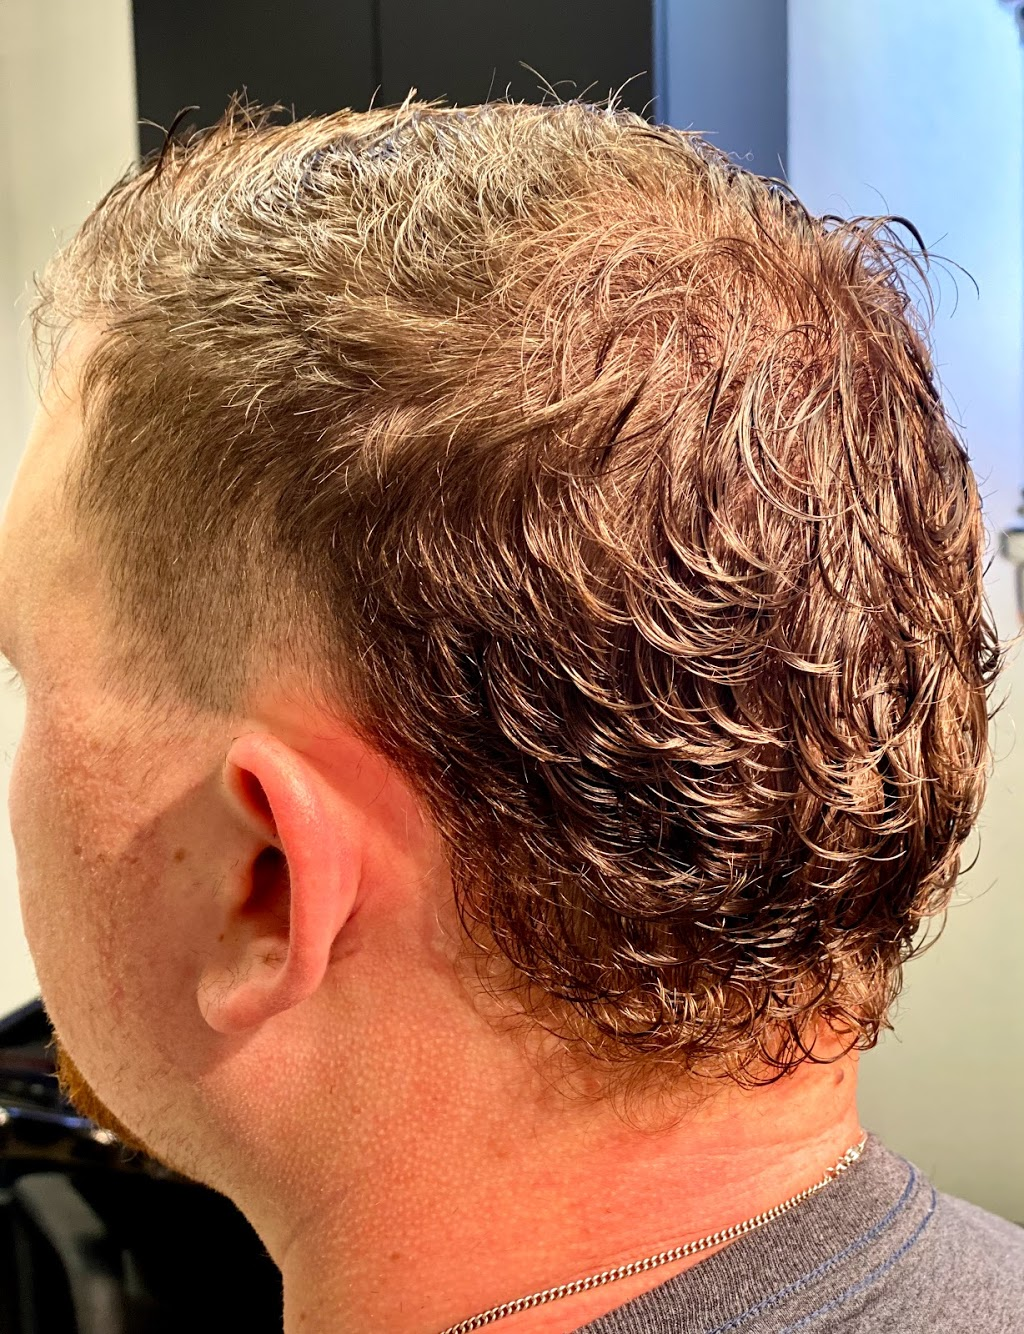 Cicis Barber Haus - hair care  | Photo 2 of 10 | Address: 301 Trophy Lake Drive Suit 156. #3, Trophy Club, TX 76262, USA | Phone: (817) 701-6271